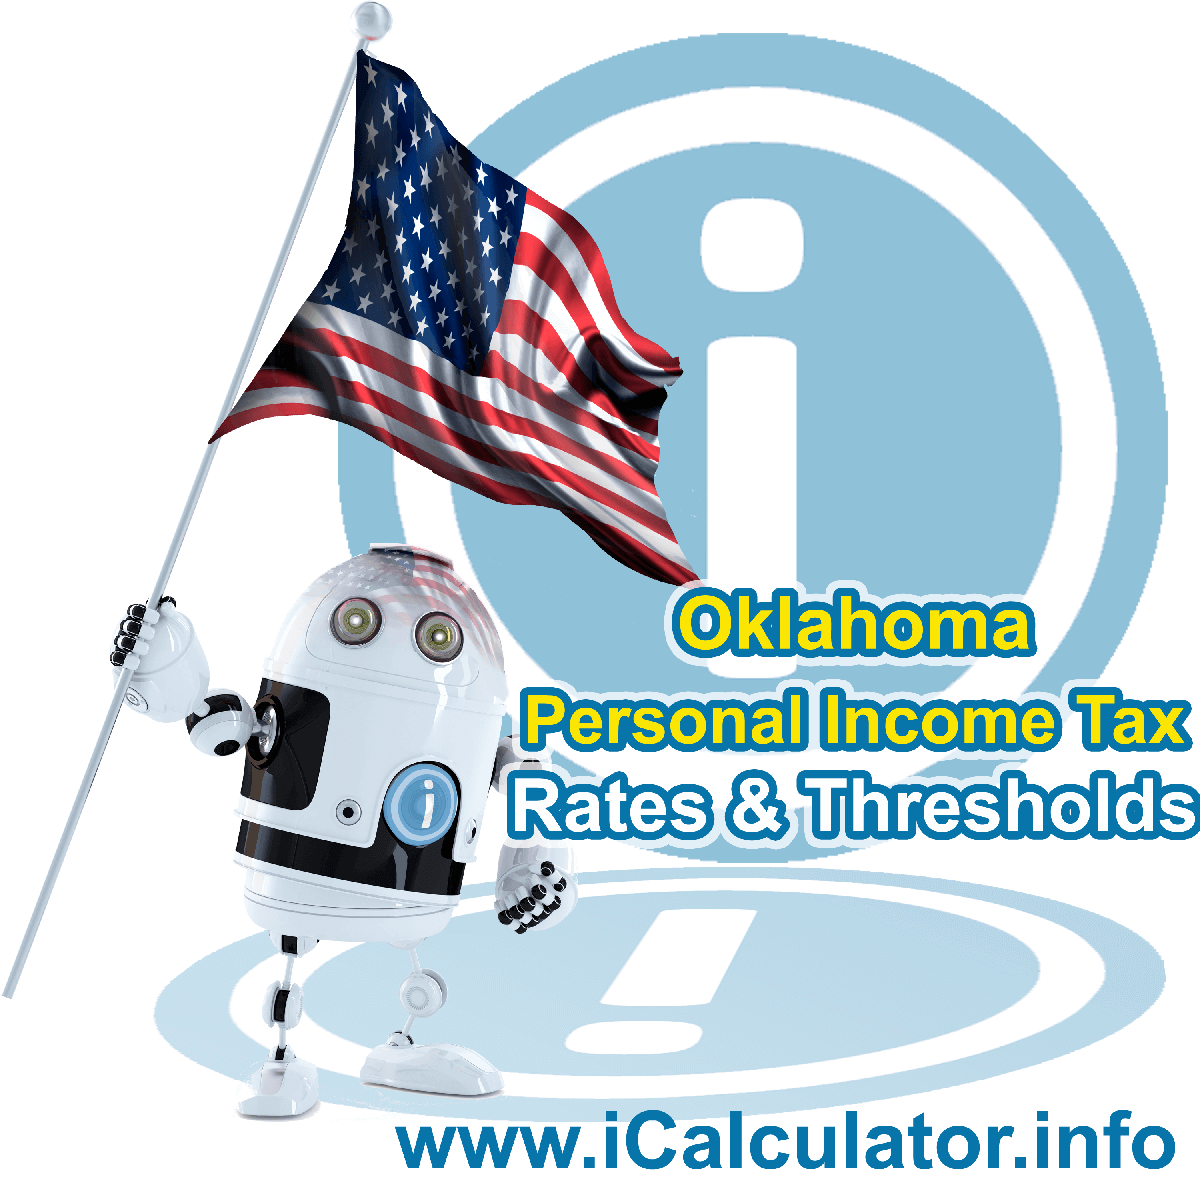 Oklahoma State Tax Tables 2013. This image displays details of the Oklahoma State Tax Tables for the 2013 tax return year which is provided in support of the 2013 US Tax Calculator